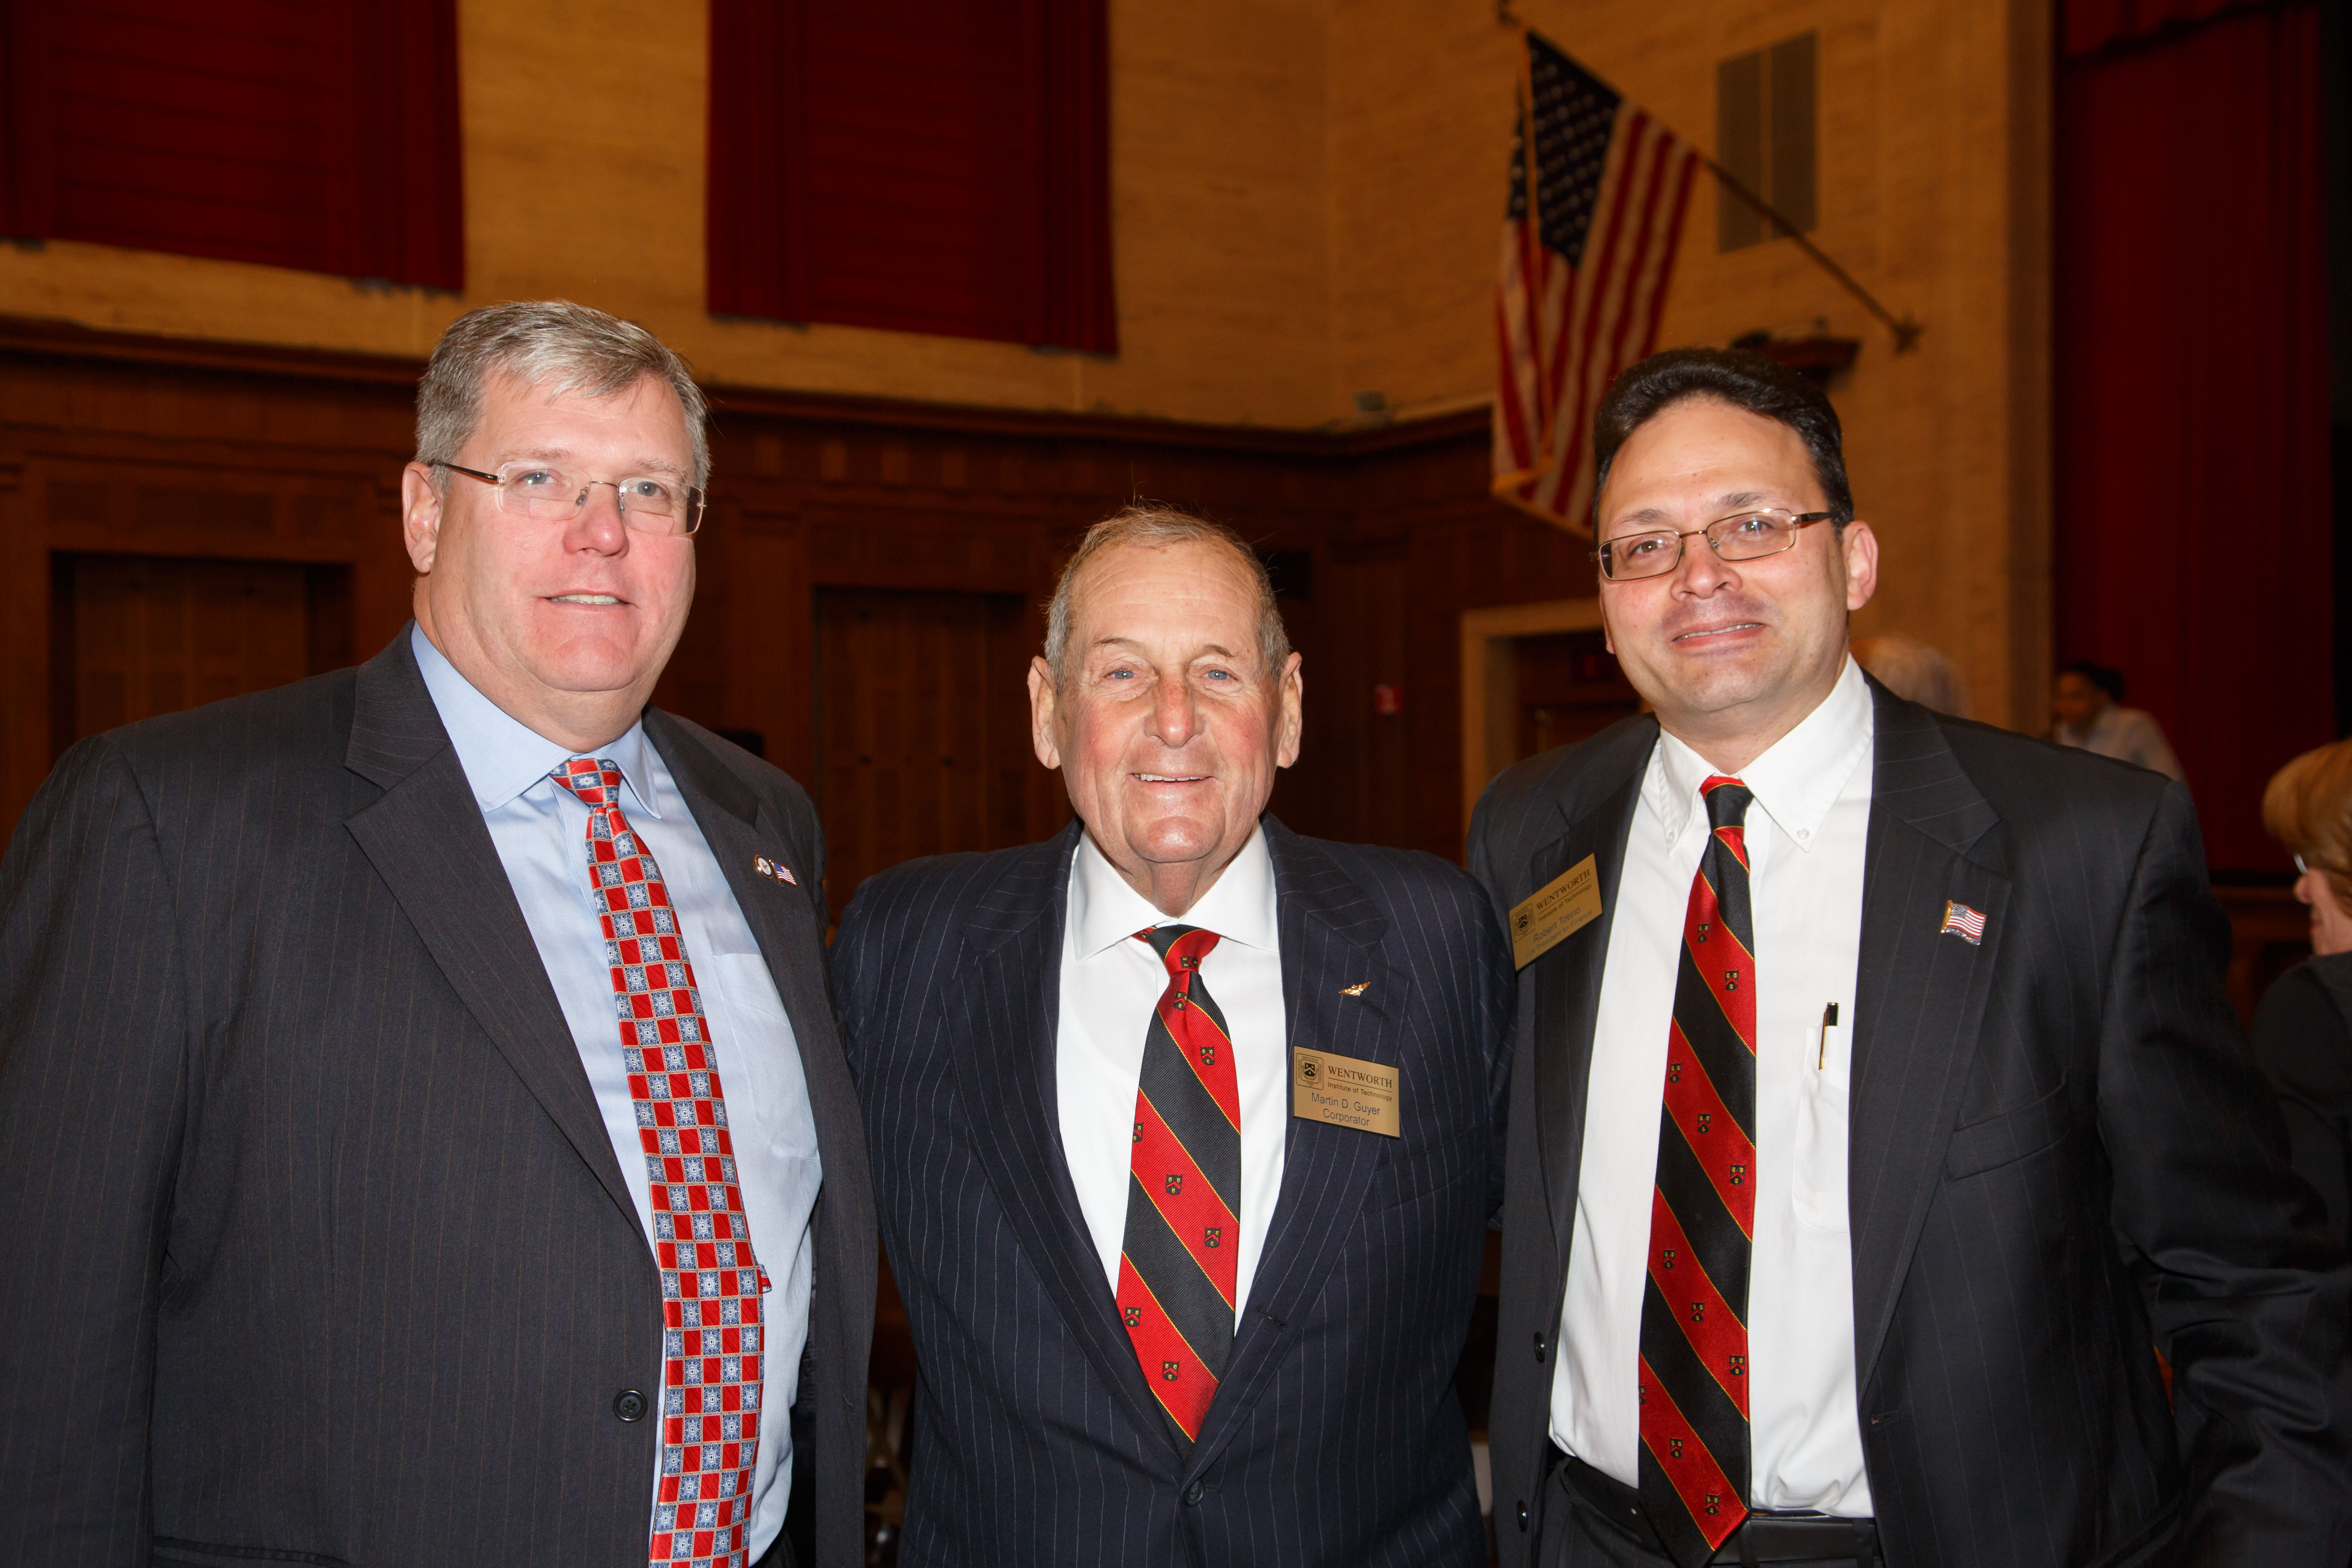 Massachusetts Department of Veterans Services General Counsel Stuart Ivimey, Marty Guyer, and Vice President for Finance Robert Totino.